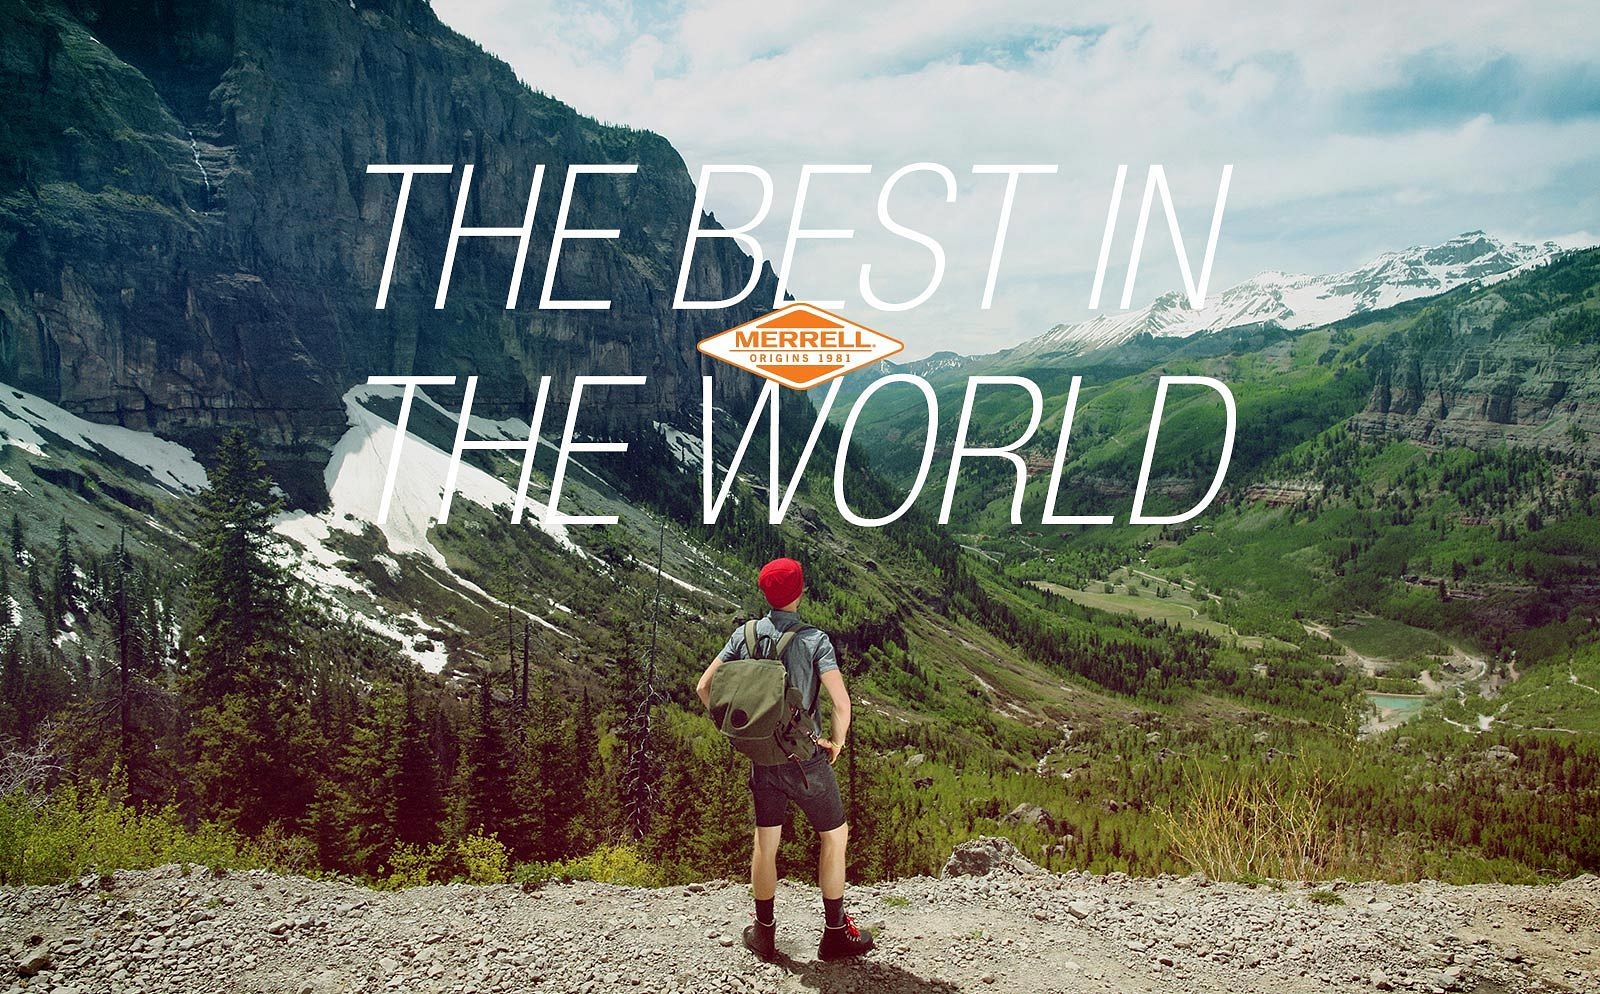 Merrell Best in the World